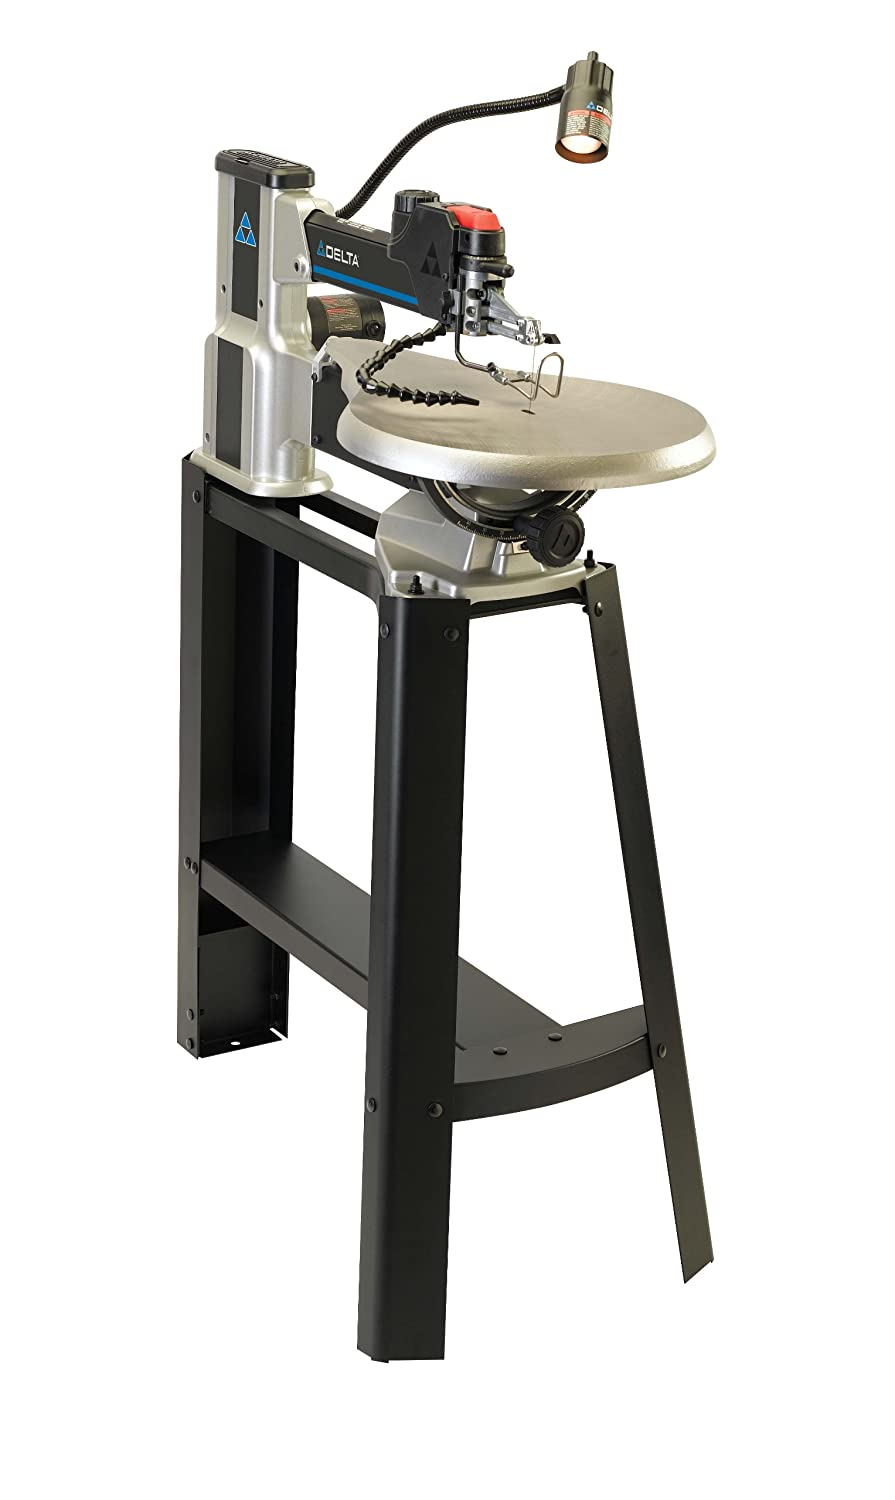 Delta power equipment corporation 40 695 scroll saw 20 inch variable delta power equipment corporation 40 695 scroll saw 20 inch variable speed scroll saw scroll saw accessories amazon greentooth